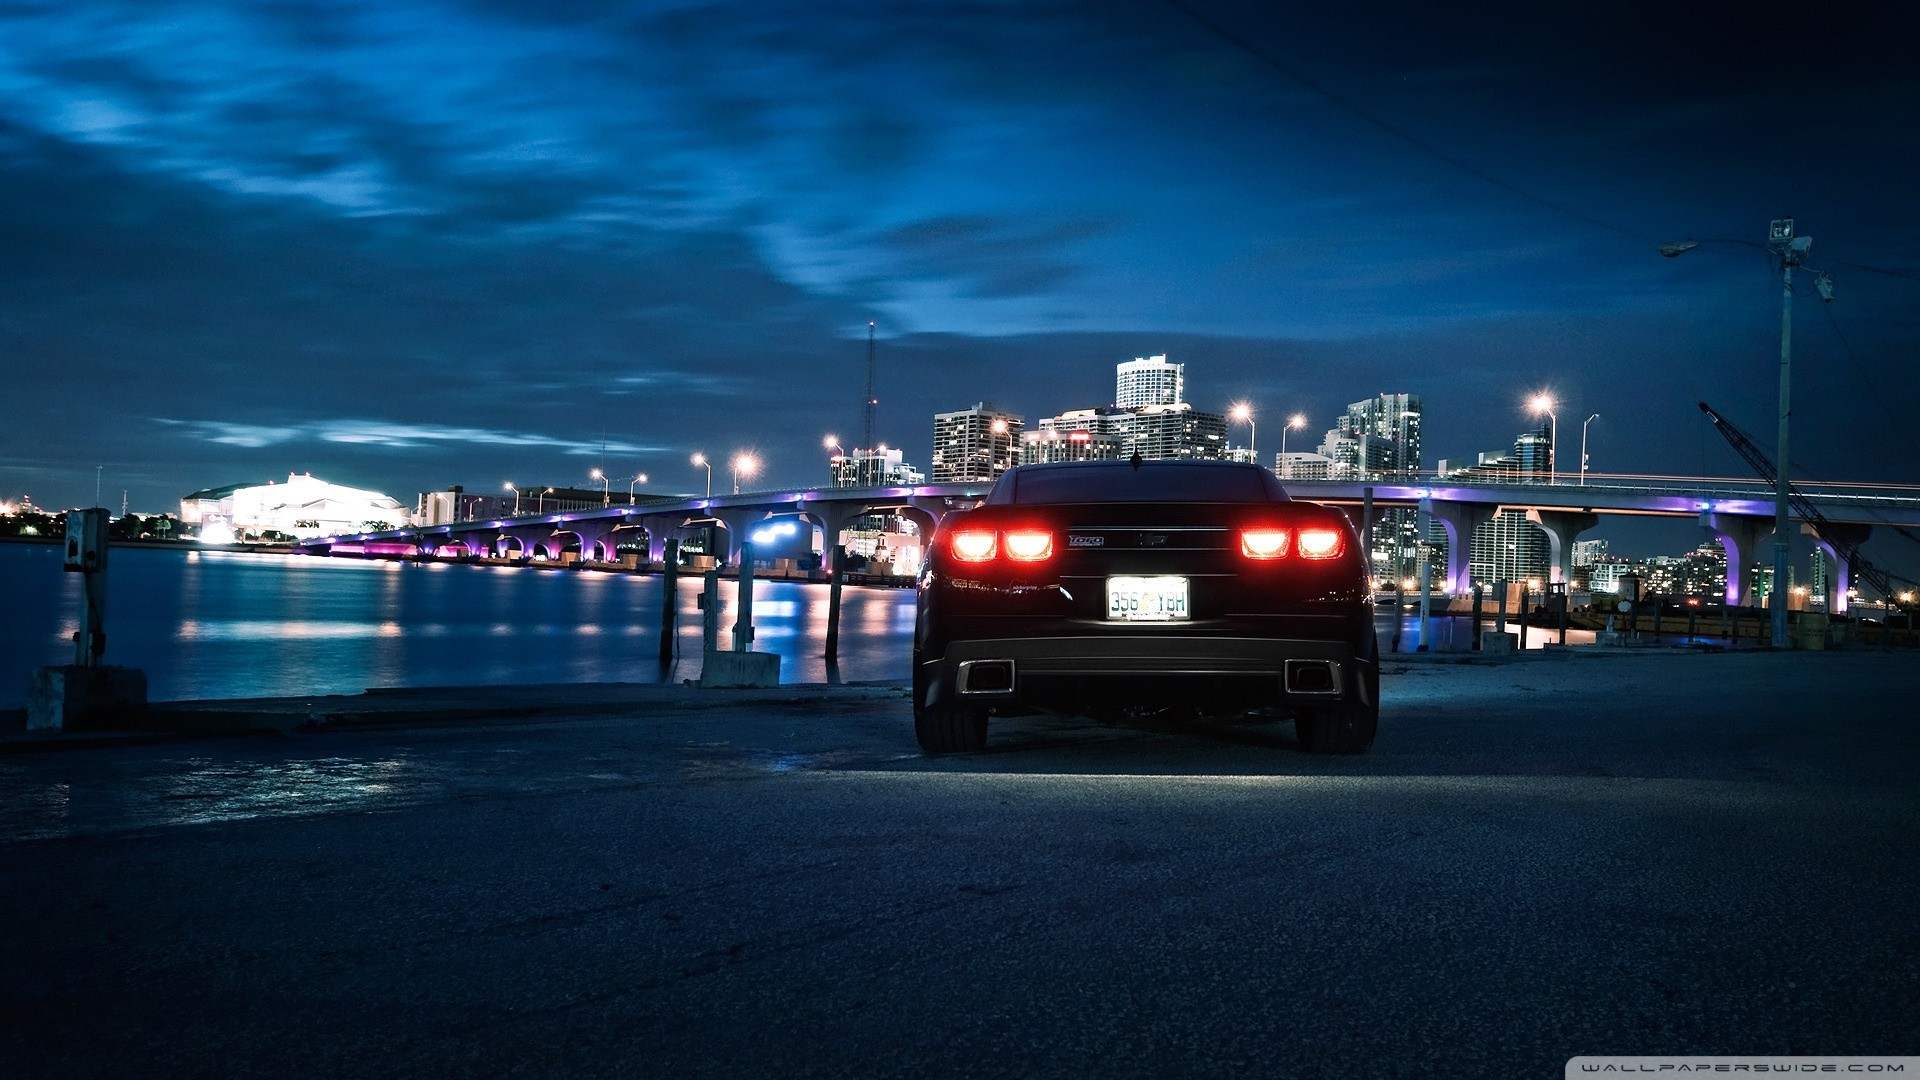 Night City Wallpapers 67 Images